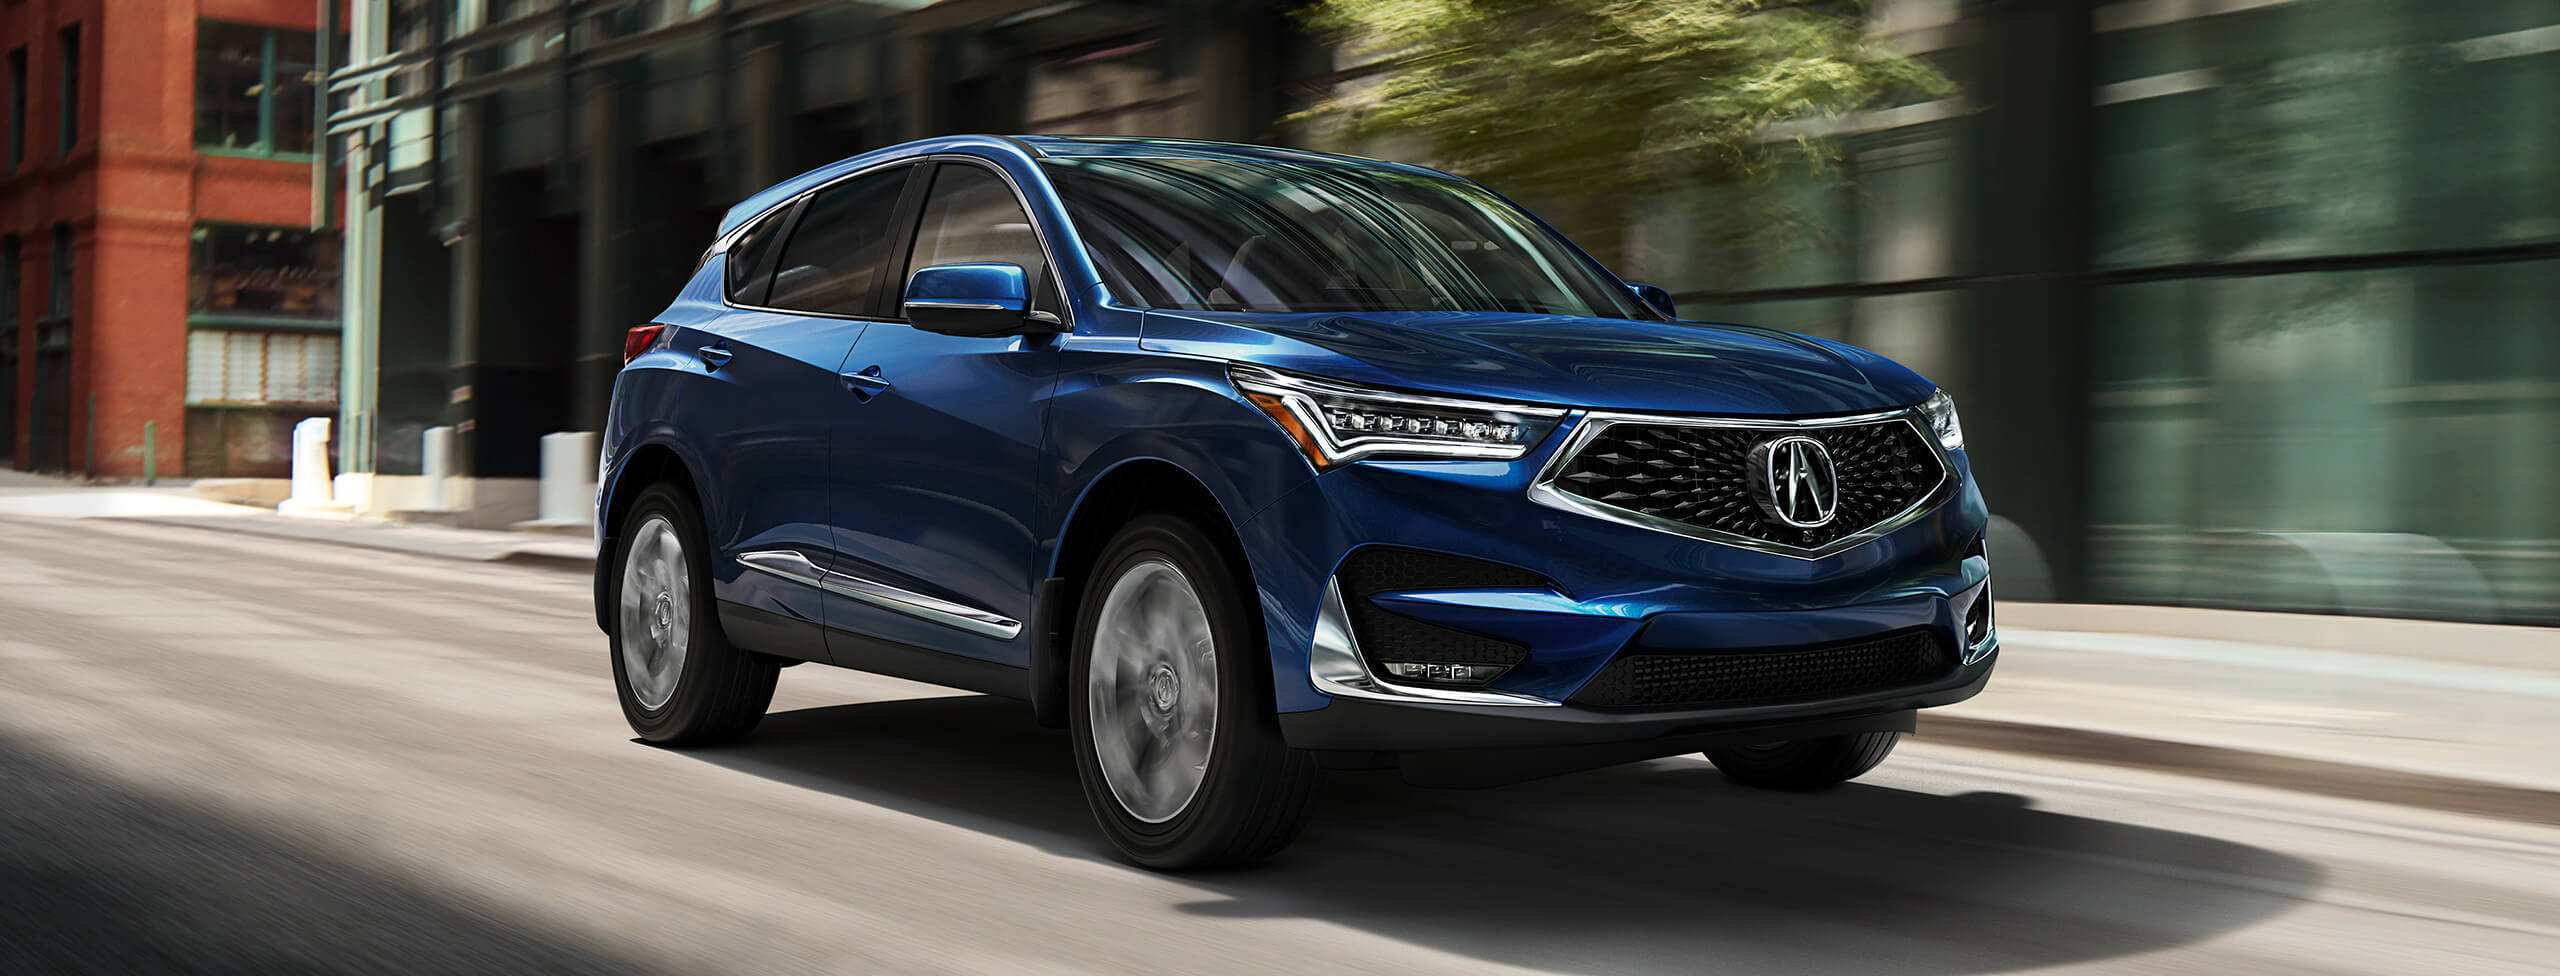 39 New 2020 Acura Mdx Photos Price and Release date